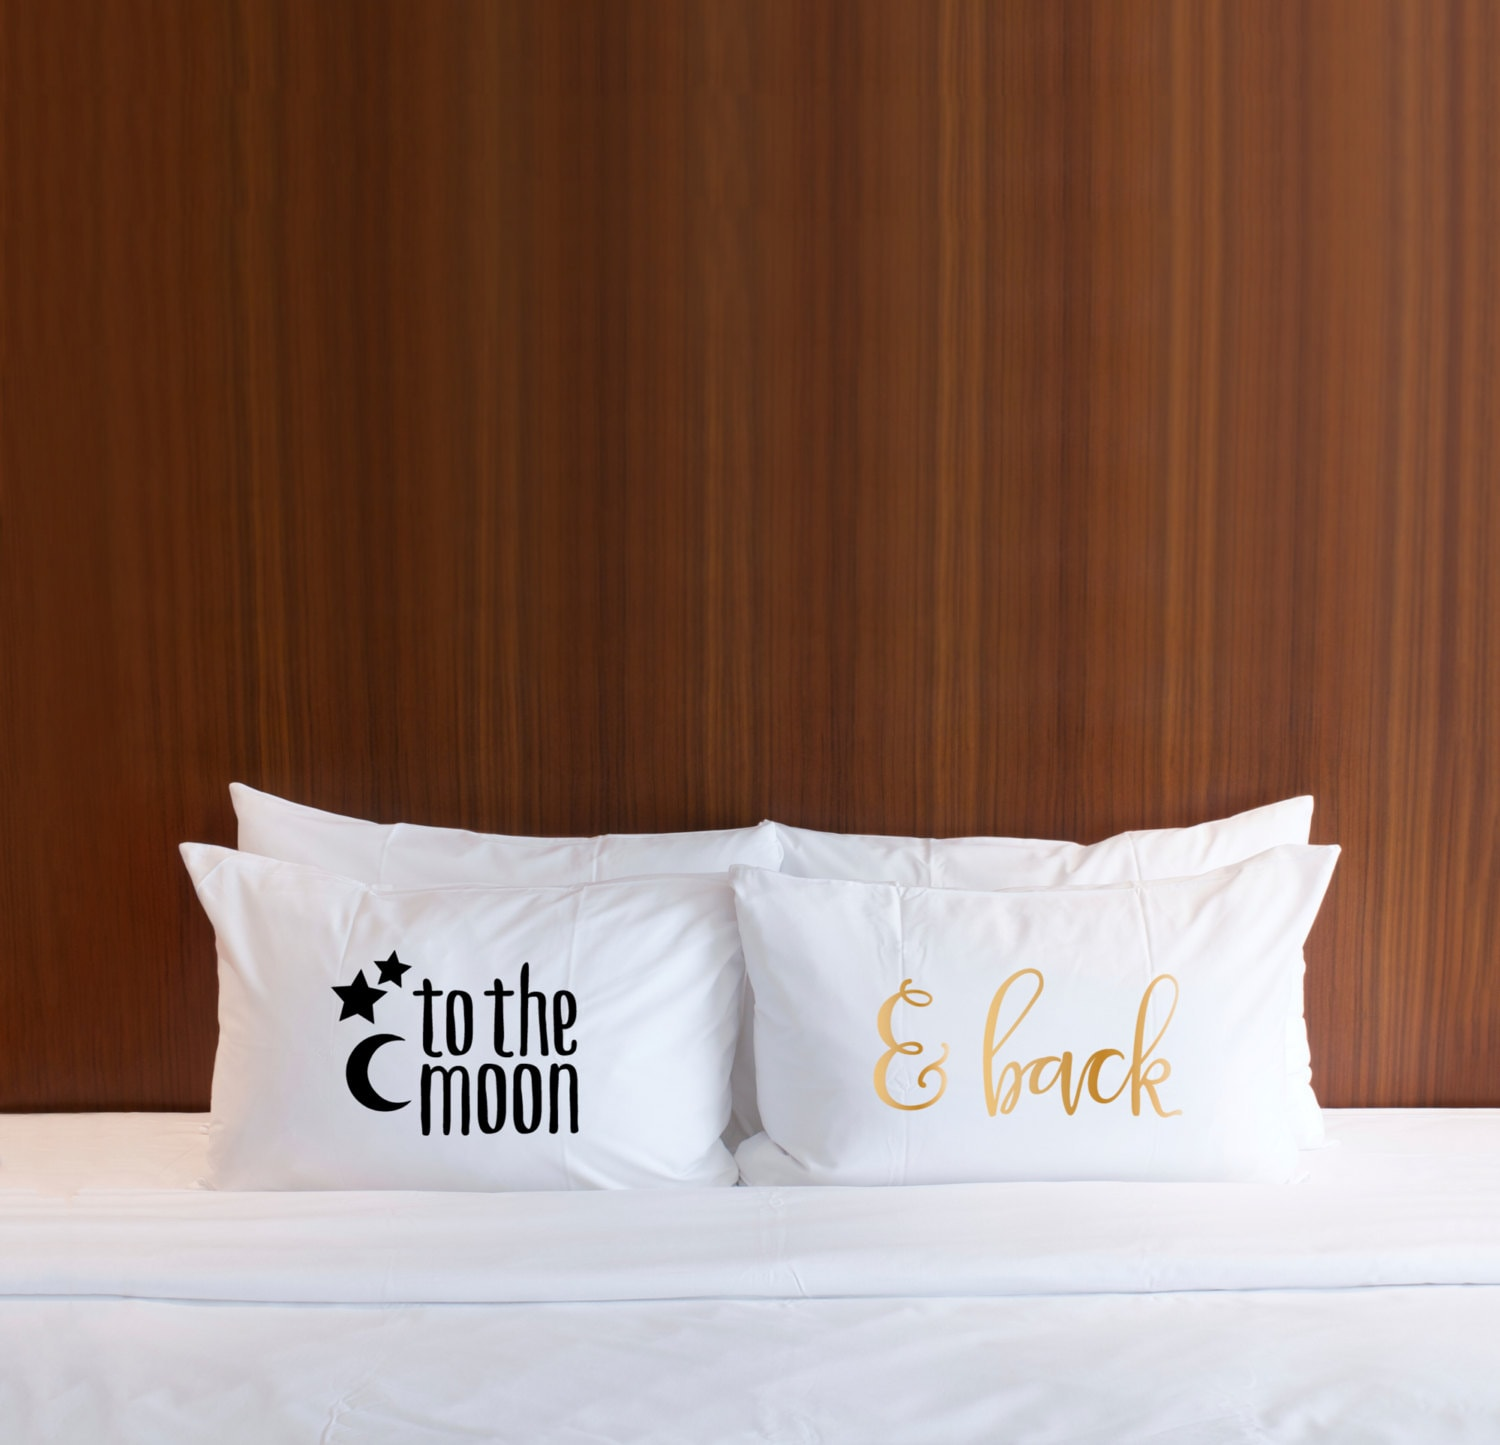 """Pillowcases Gift Set To The Moon & Back Pillow Case Set, For Kids, Couples Or Wedding Anniversary Him Her 